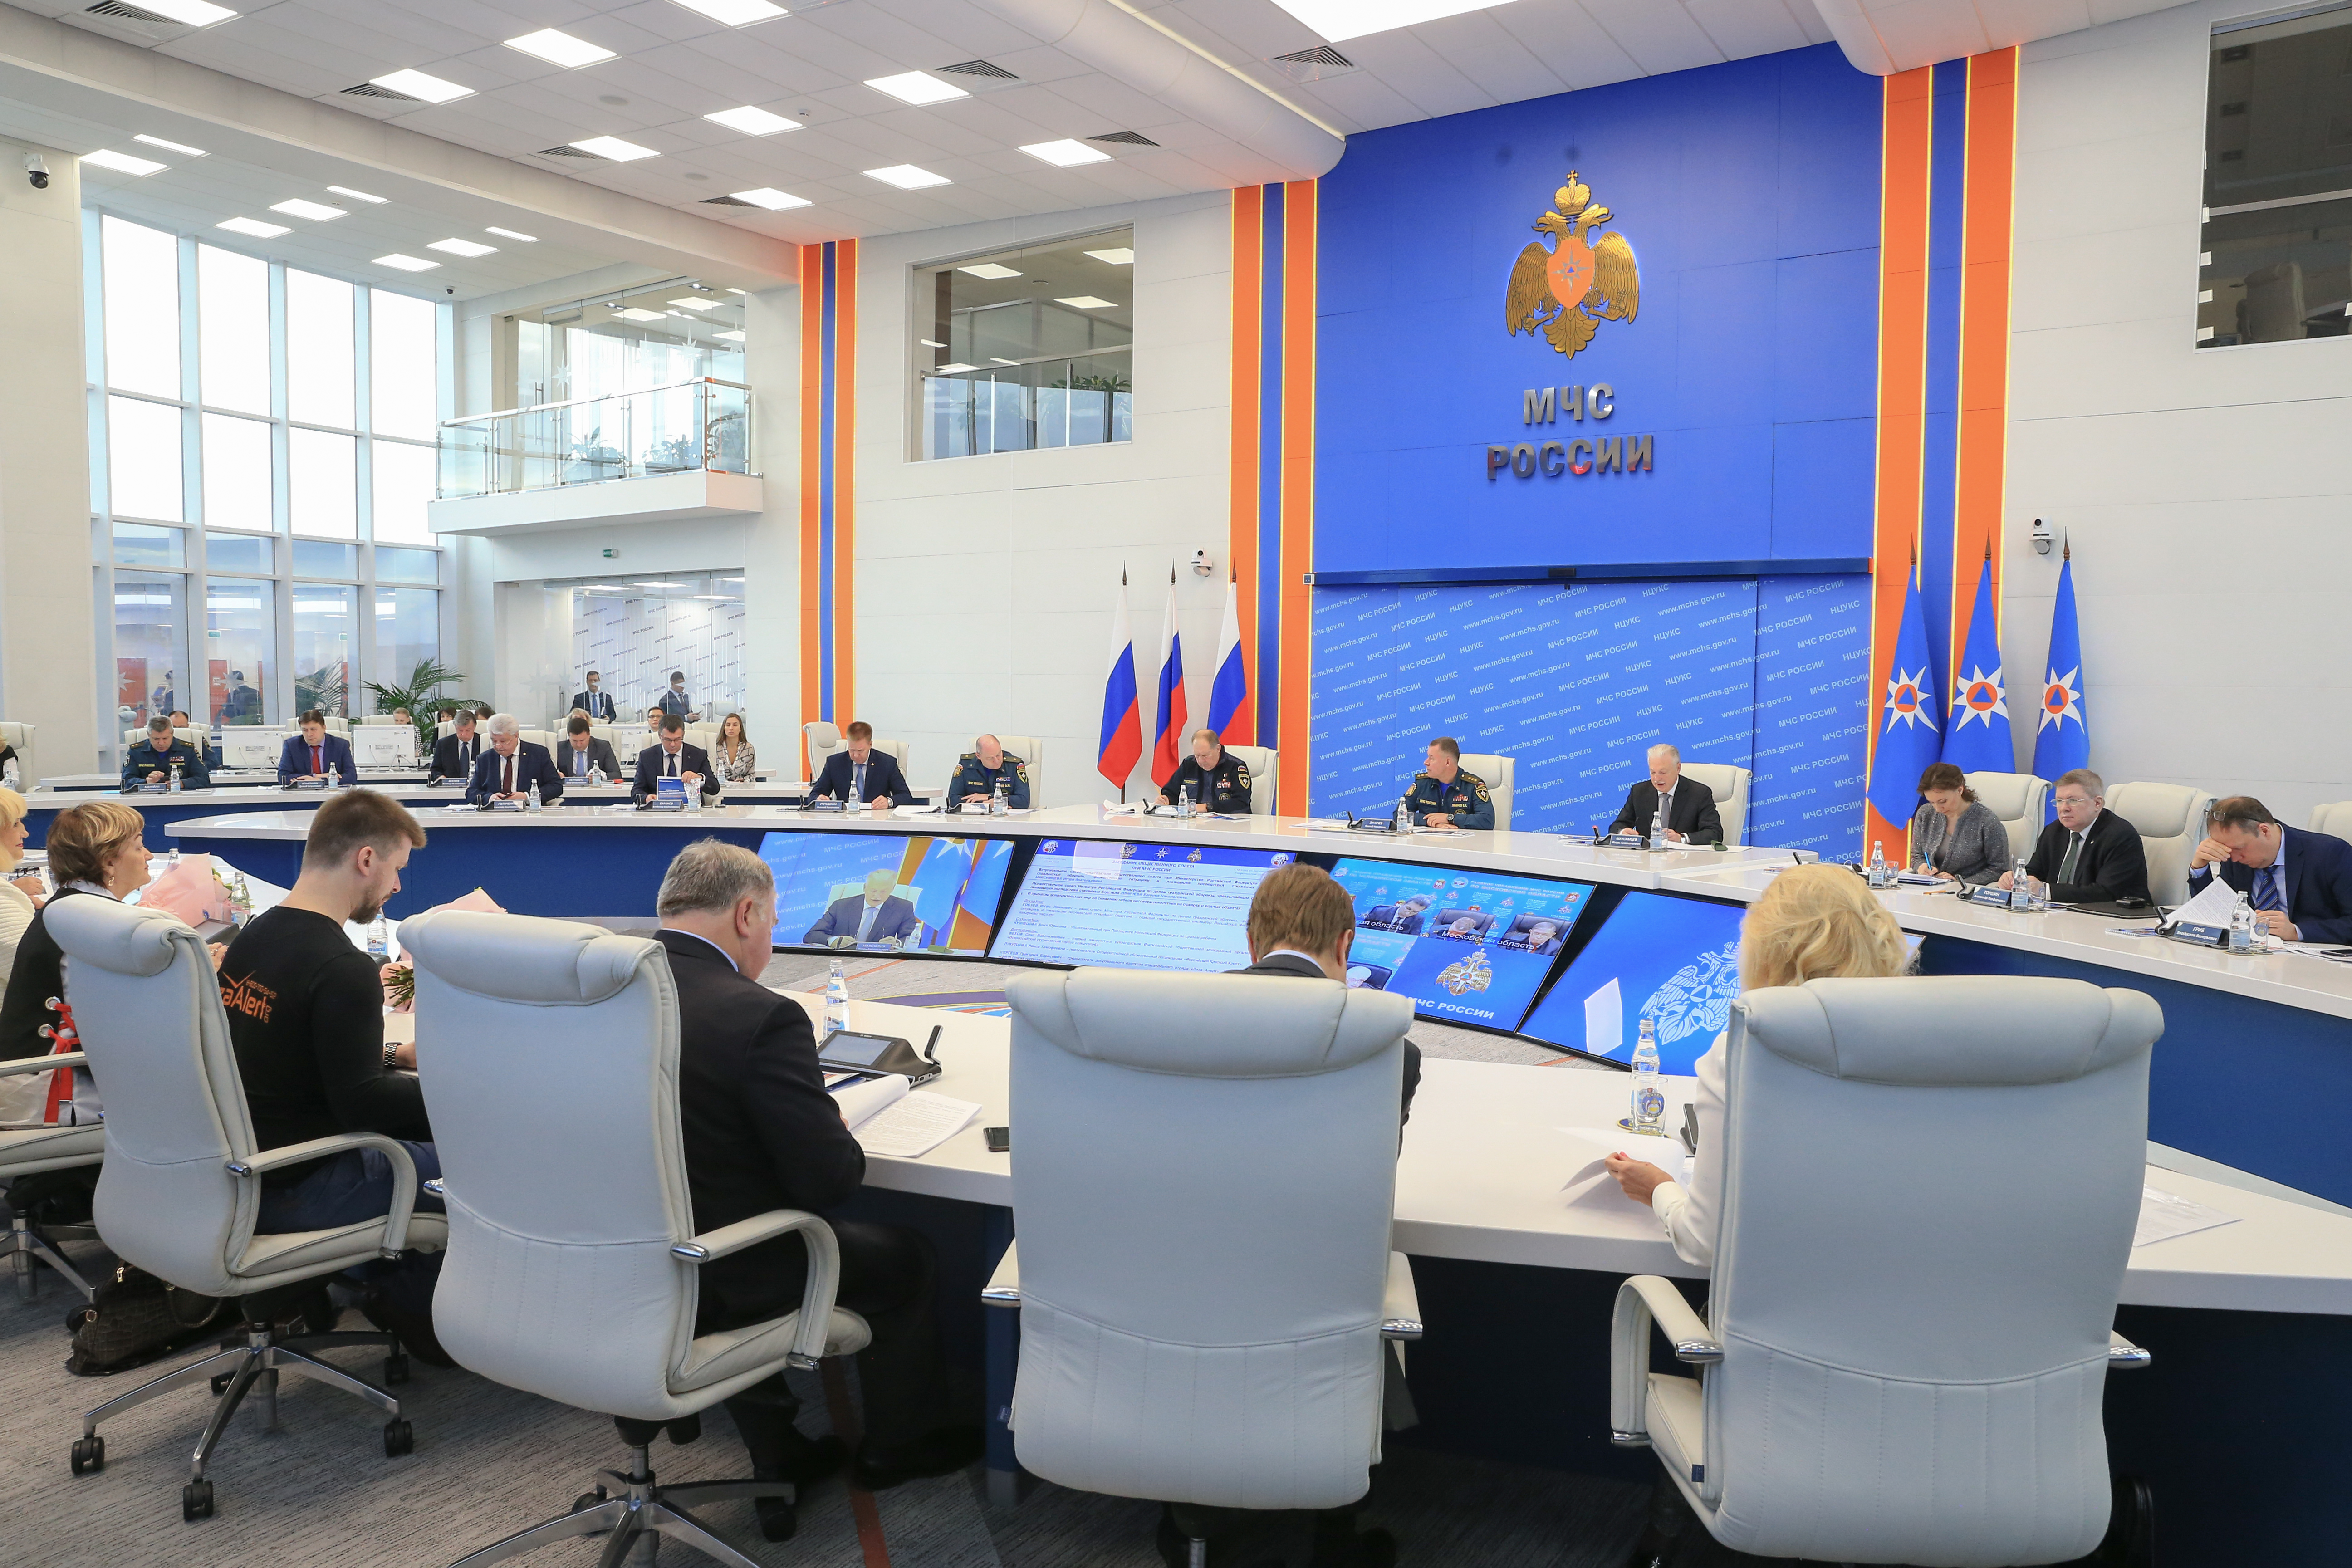 The Ministry of emergency situations will spend 690 million rubles on R&D for the Safe city hardware and software complex